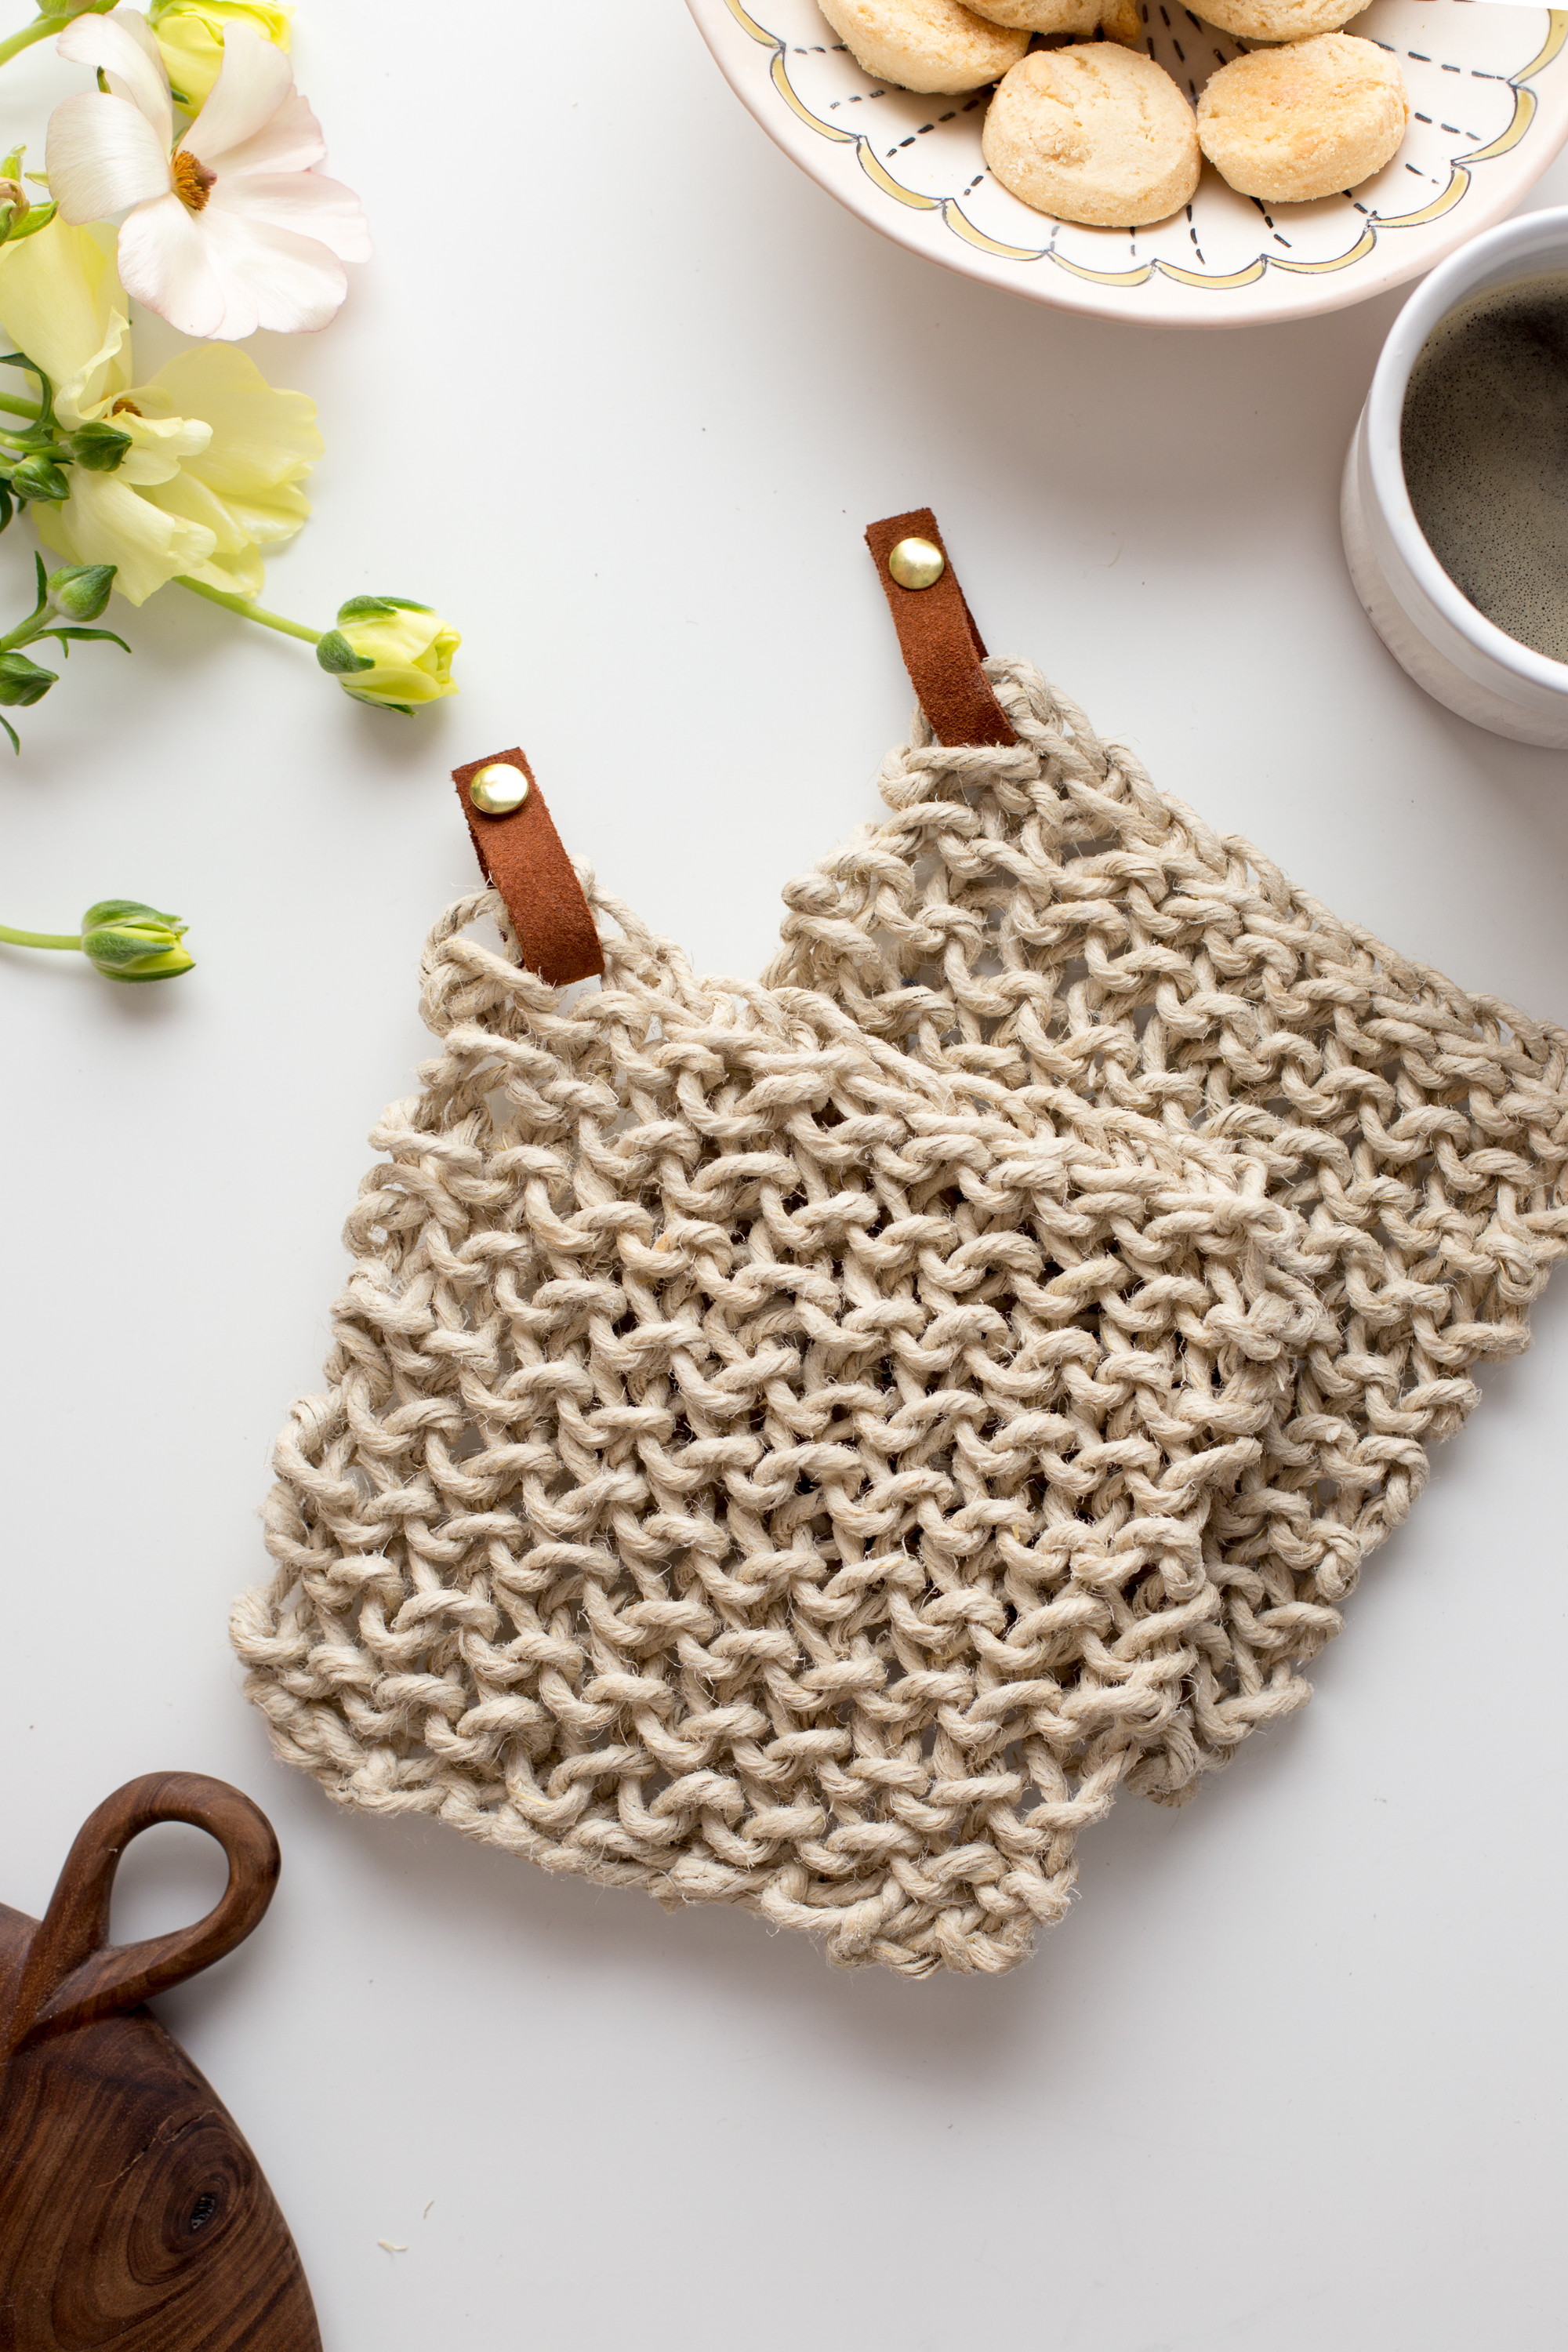 Knit Twine Potholder Pattern with Leather - Flax & Twine